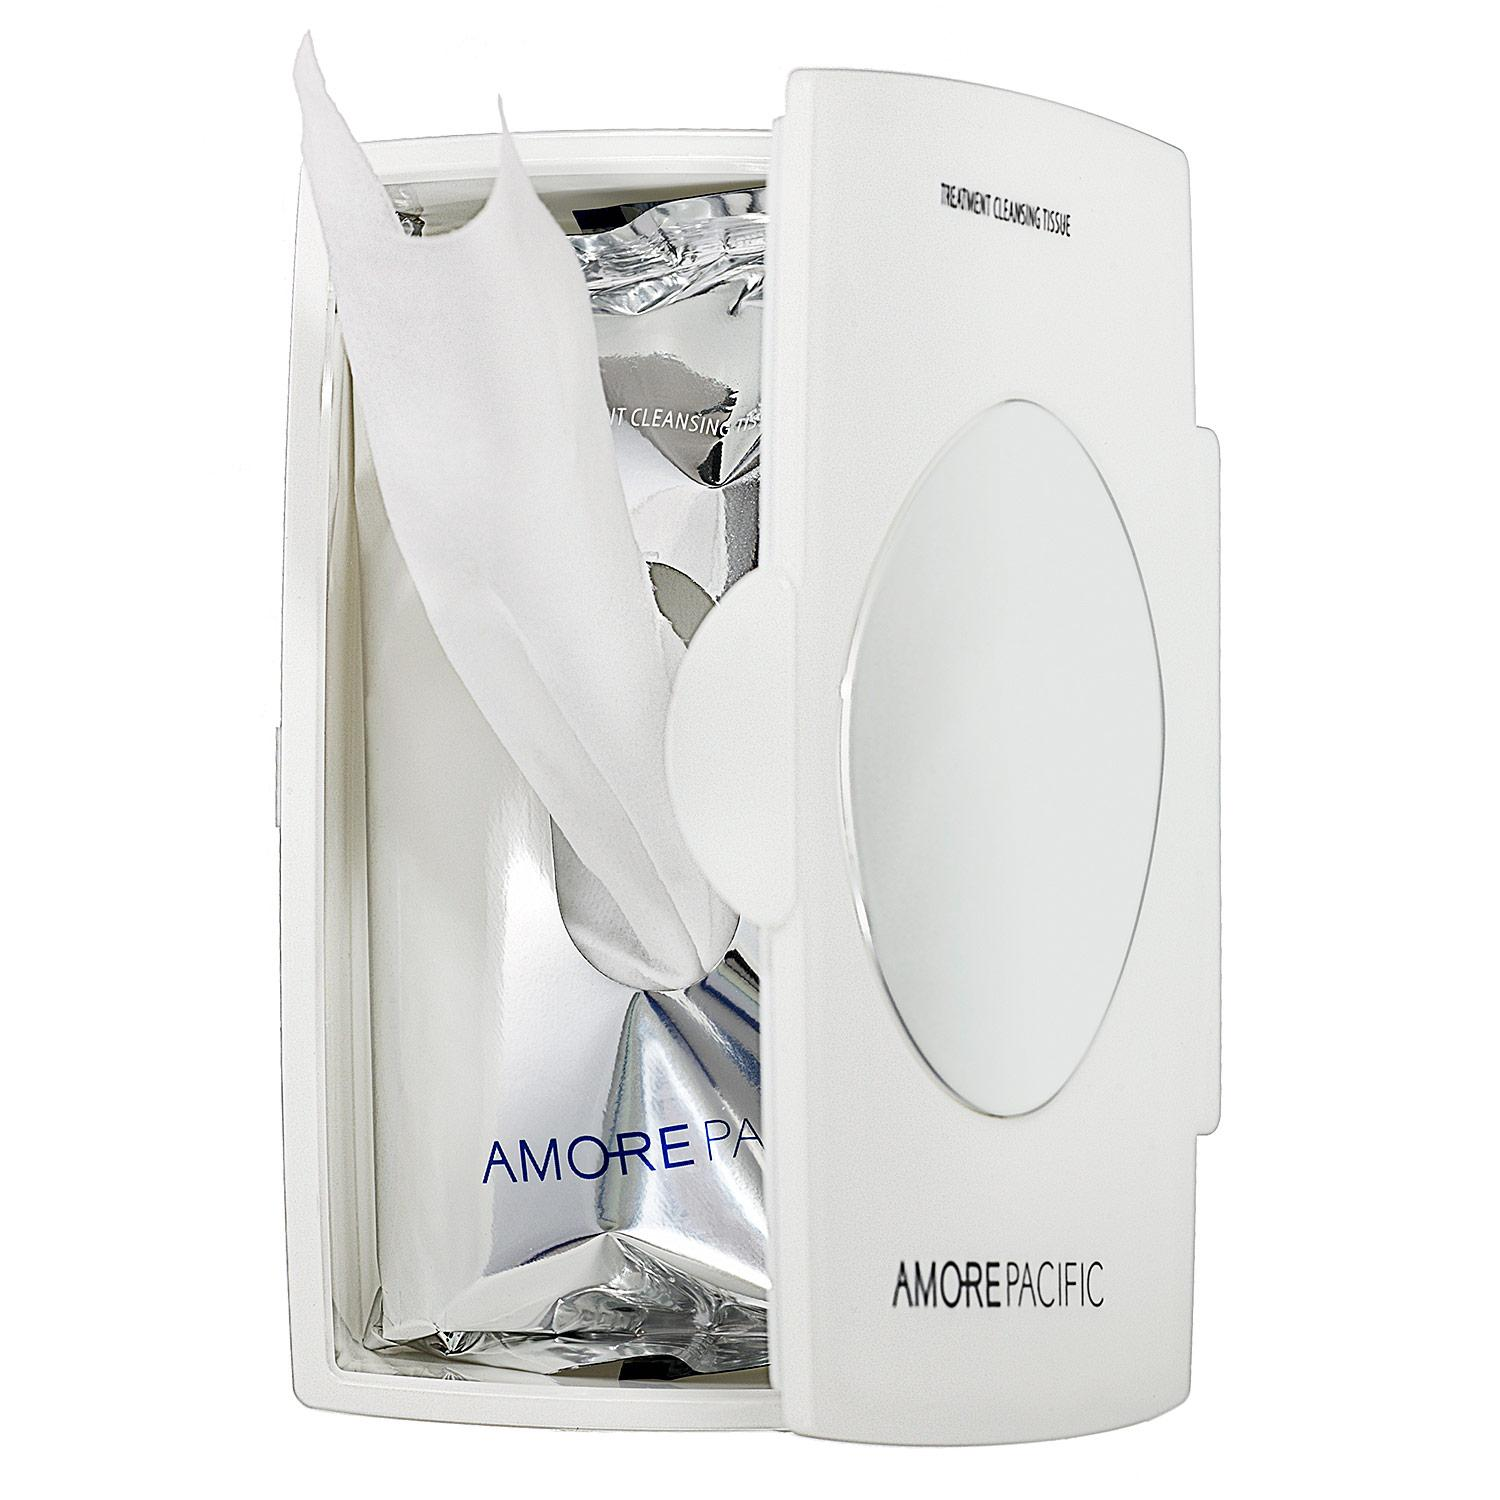 Treament Cleansing Tissue